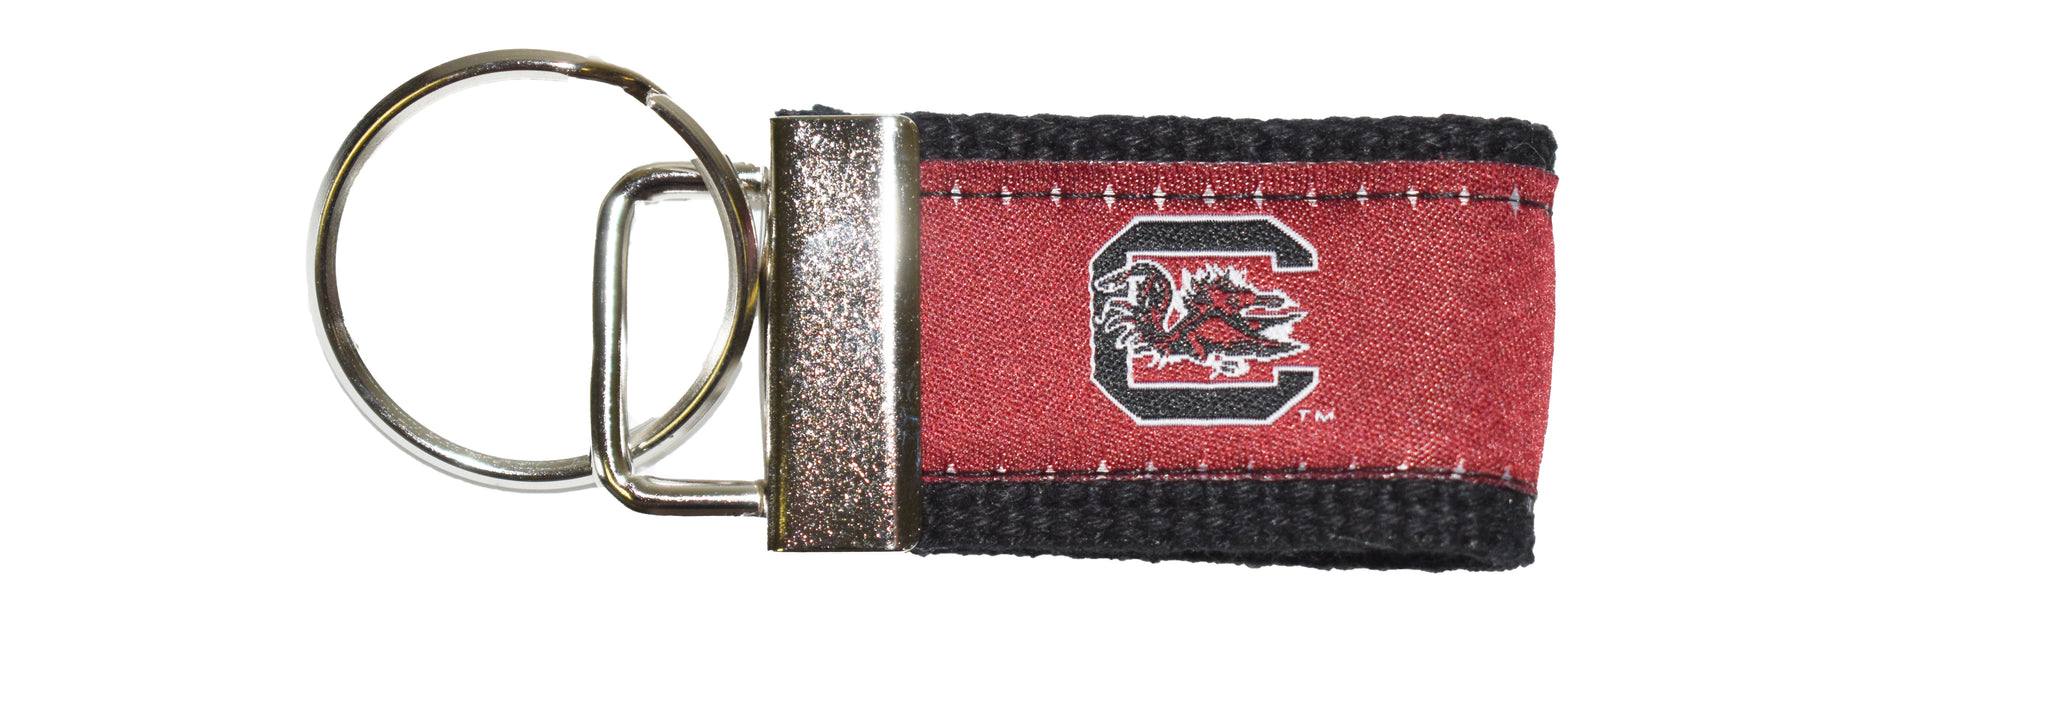 University of South Carolina Key Fob